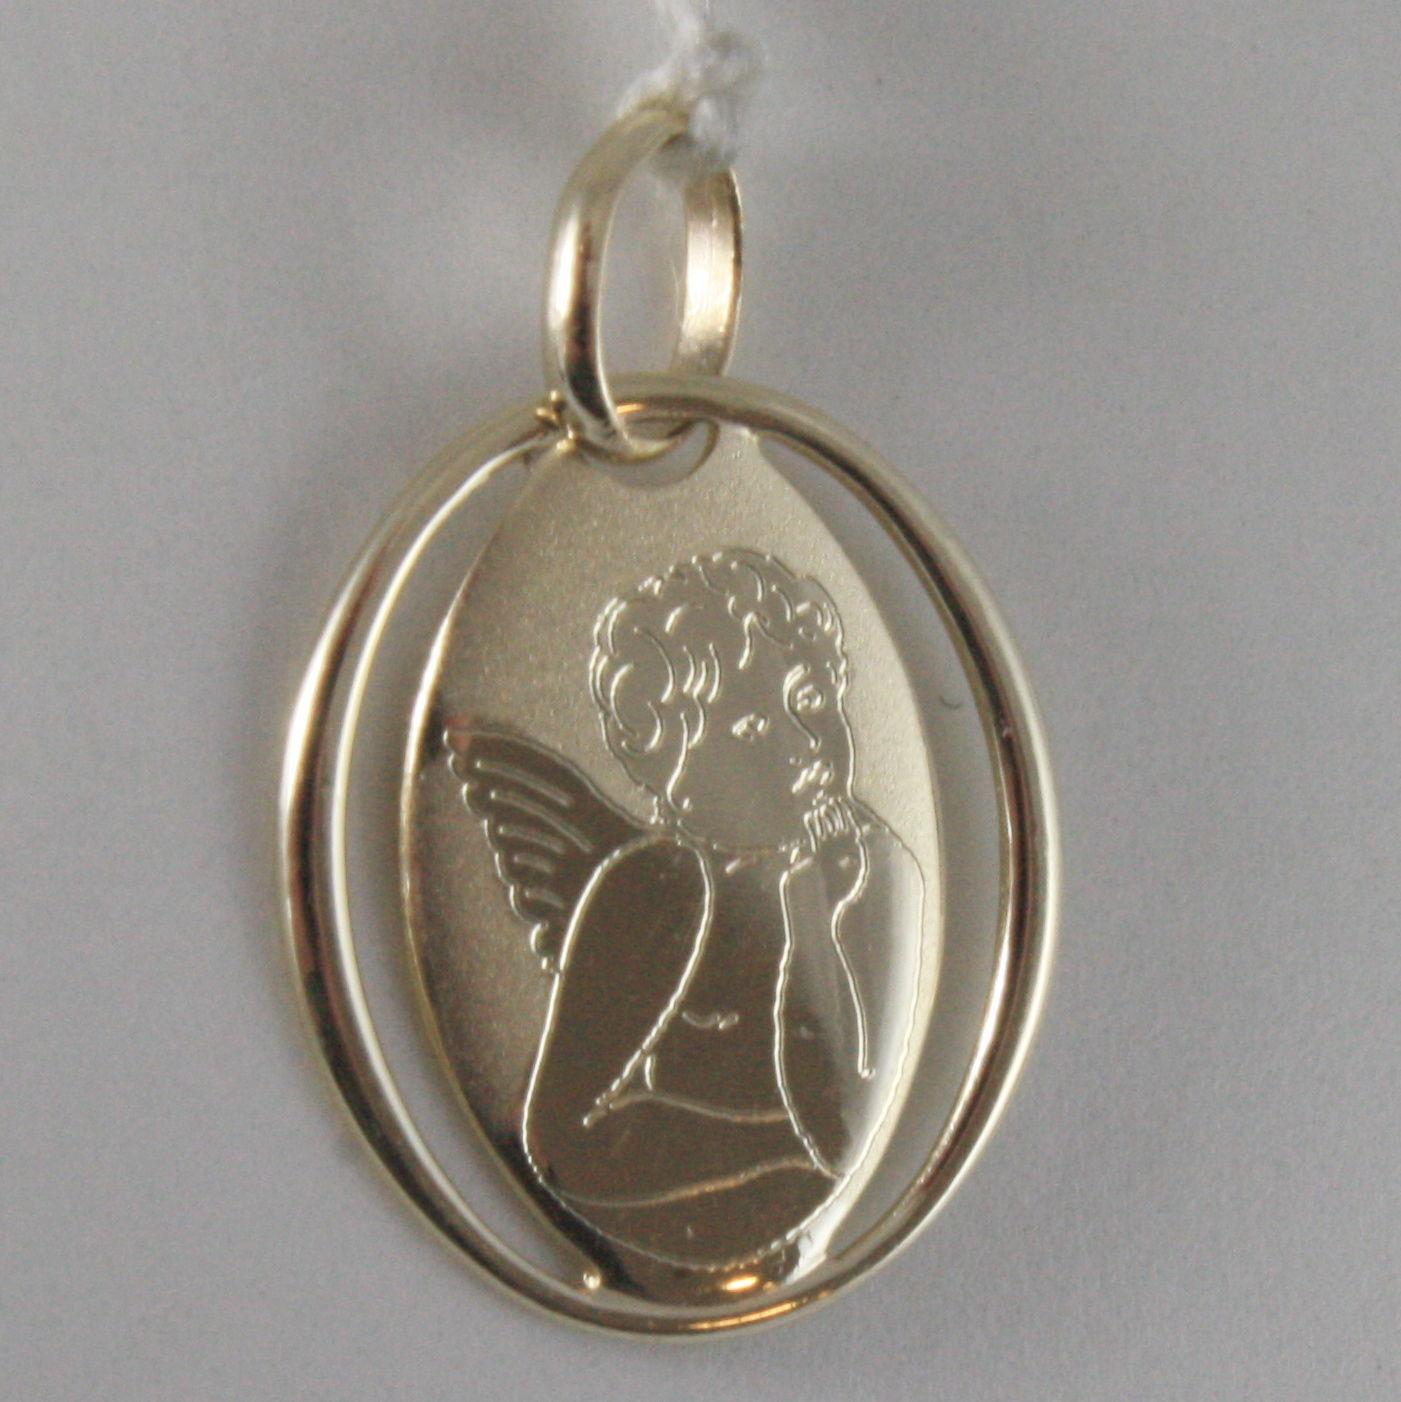 SOLID 9K YELLOW GOLD ANGEL PENDANT, OVAL ANGEL MEDAL, MADE IN ITALY, 9KT